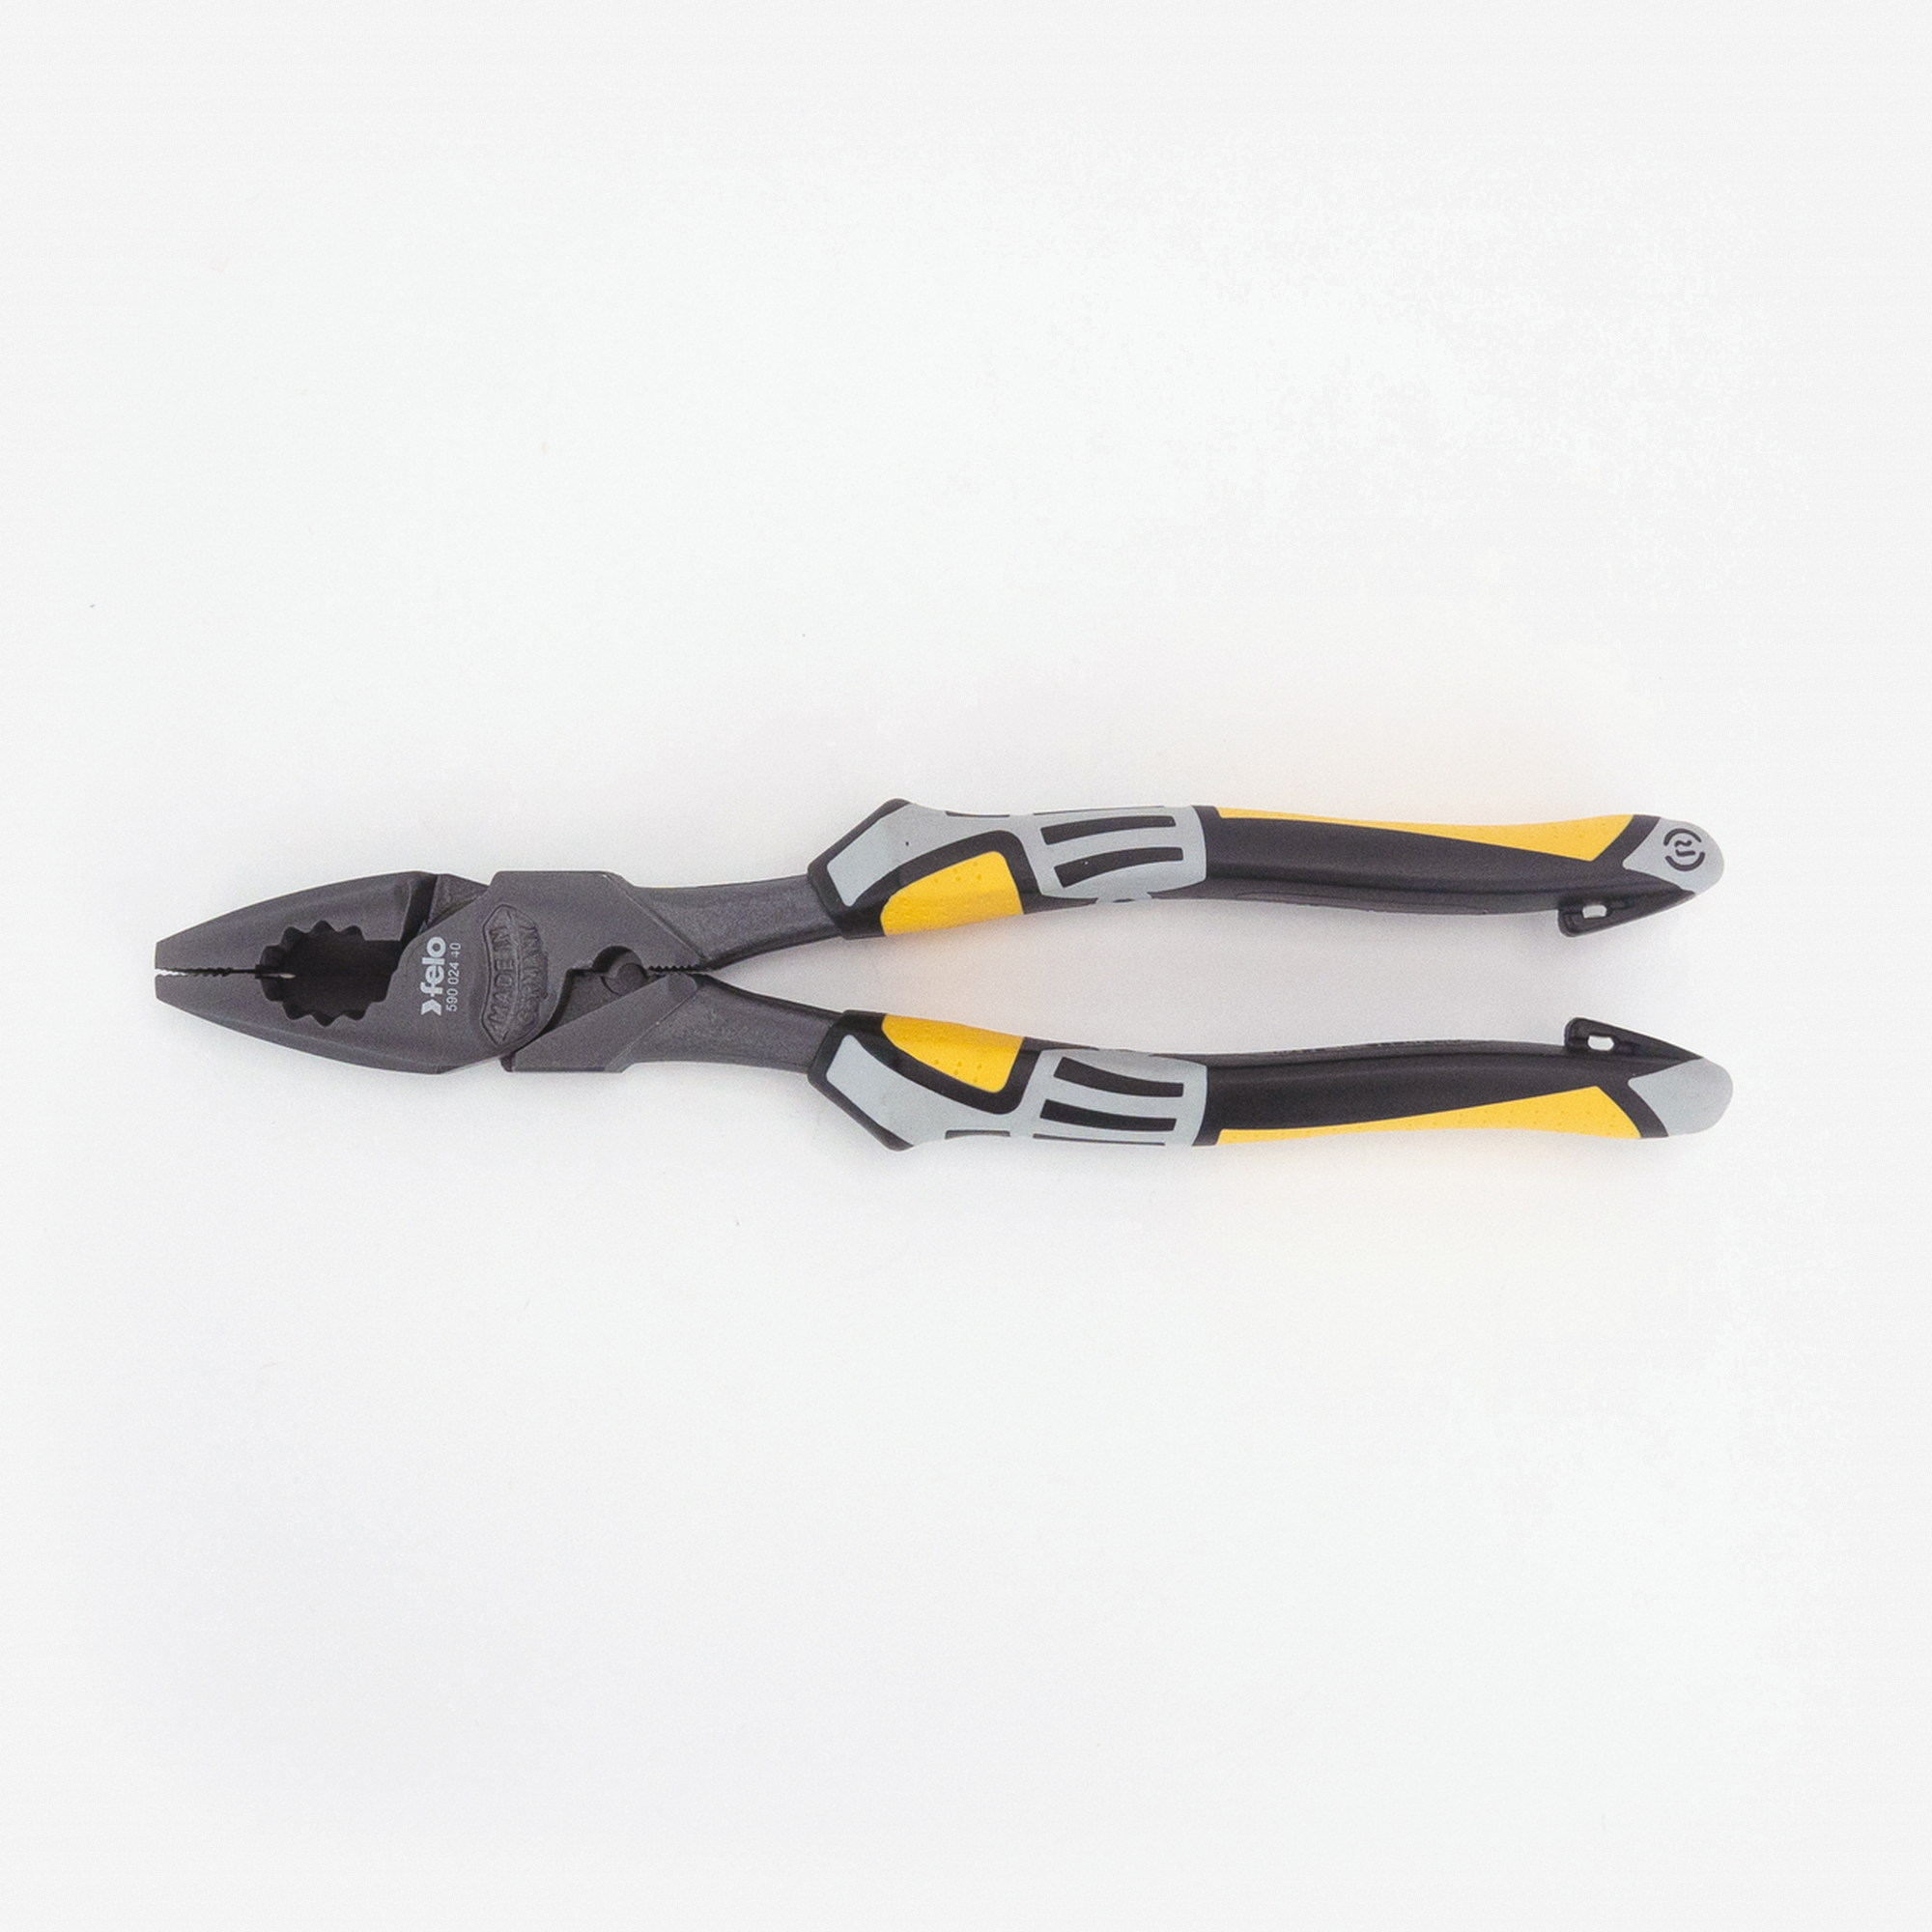 "Felo 63817 High Leverage Lineman's Pliers, 9.5"" - KC Tool"